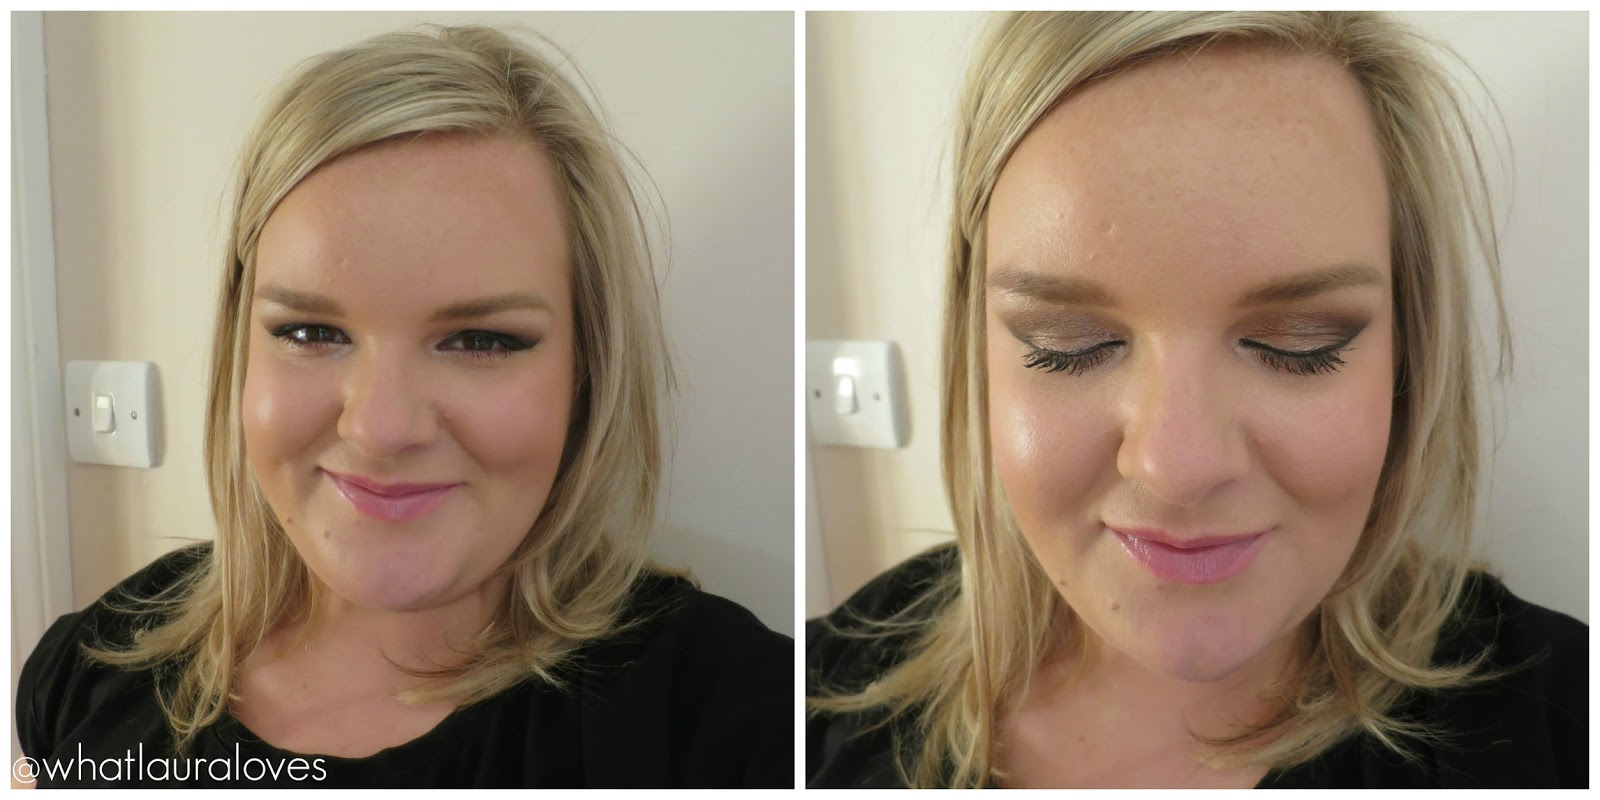 Makeup Look Created Using The Freedom House of GlamDolls Exotica Doll Look Palette